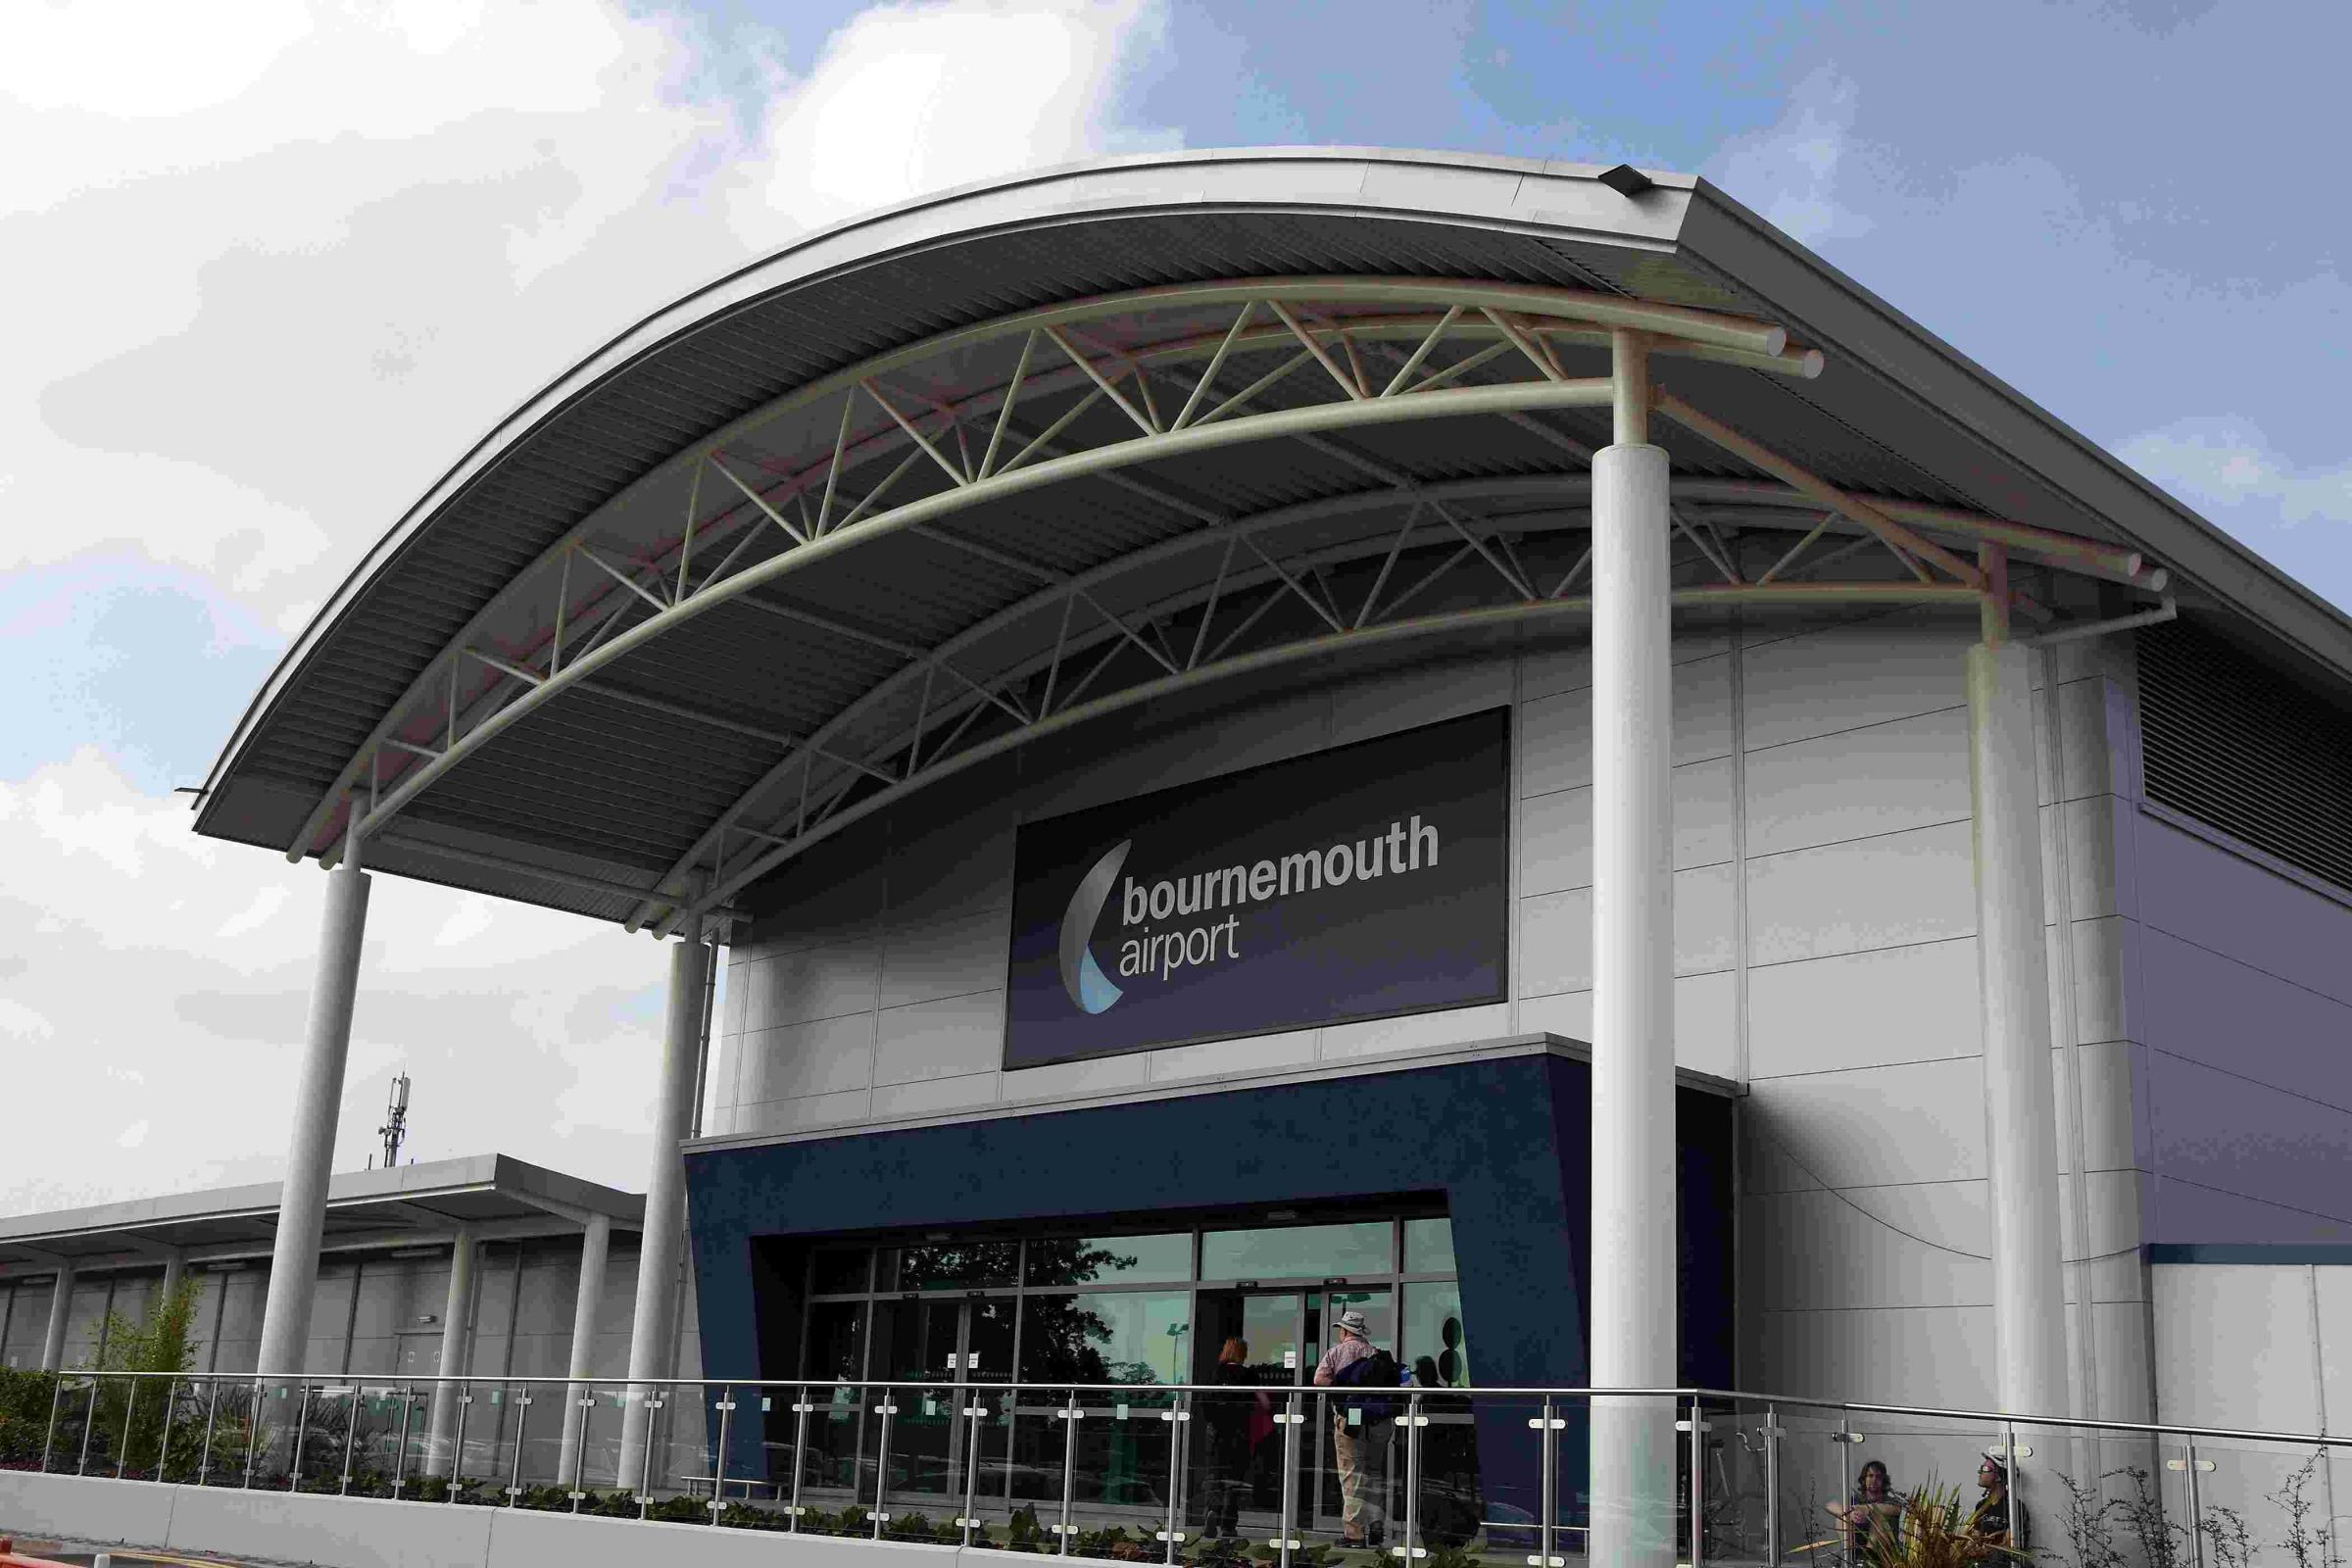 Bournemouth Airport welcomes new Turkish route with operator OSKA Travel